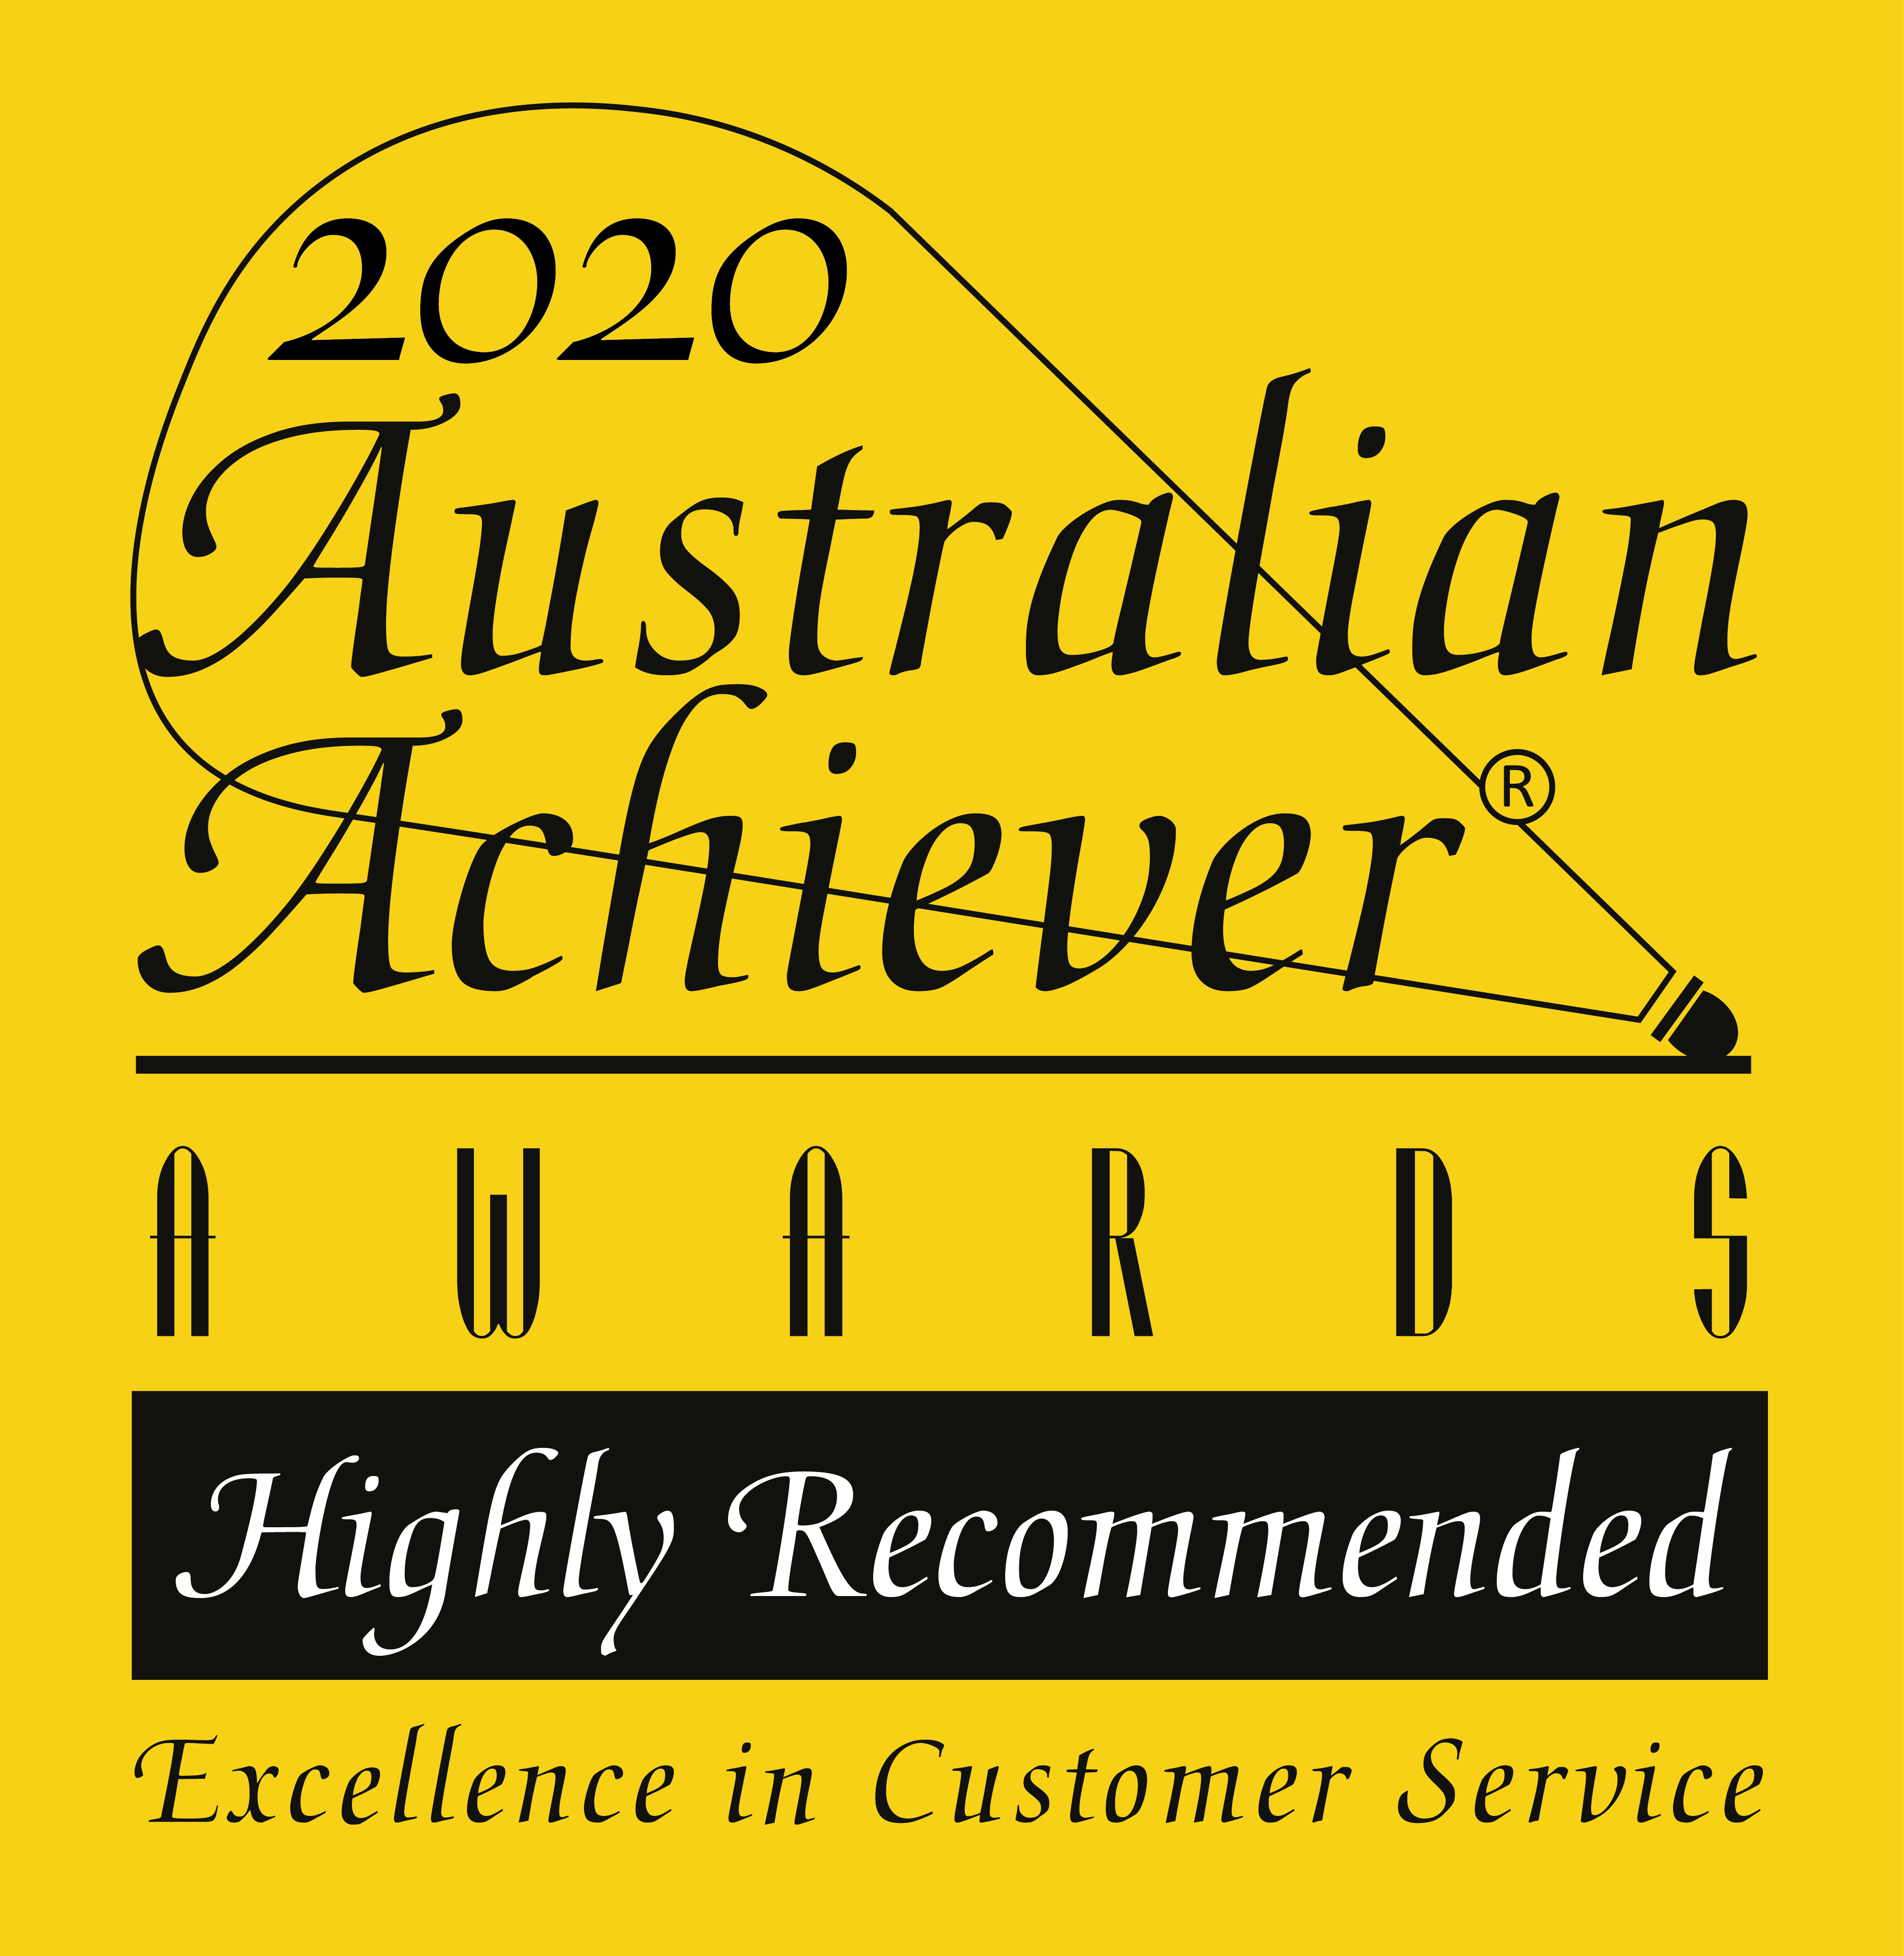 2020 Australian Achiever Awards - Highly Recommended